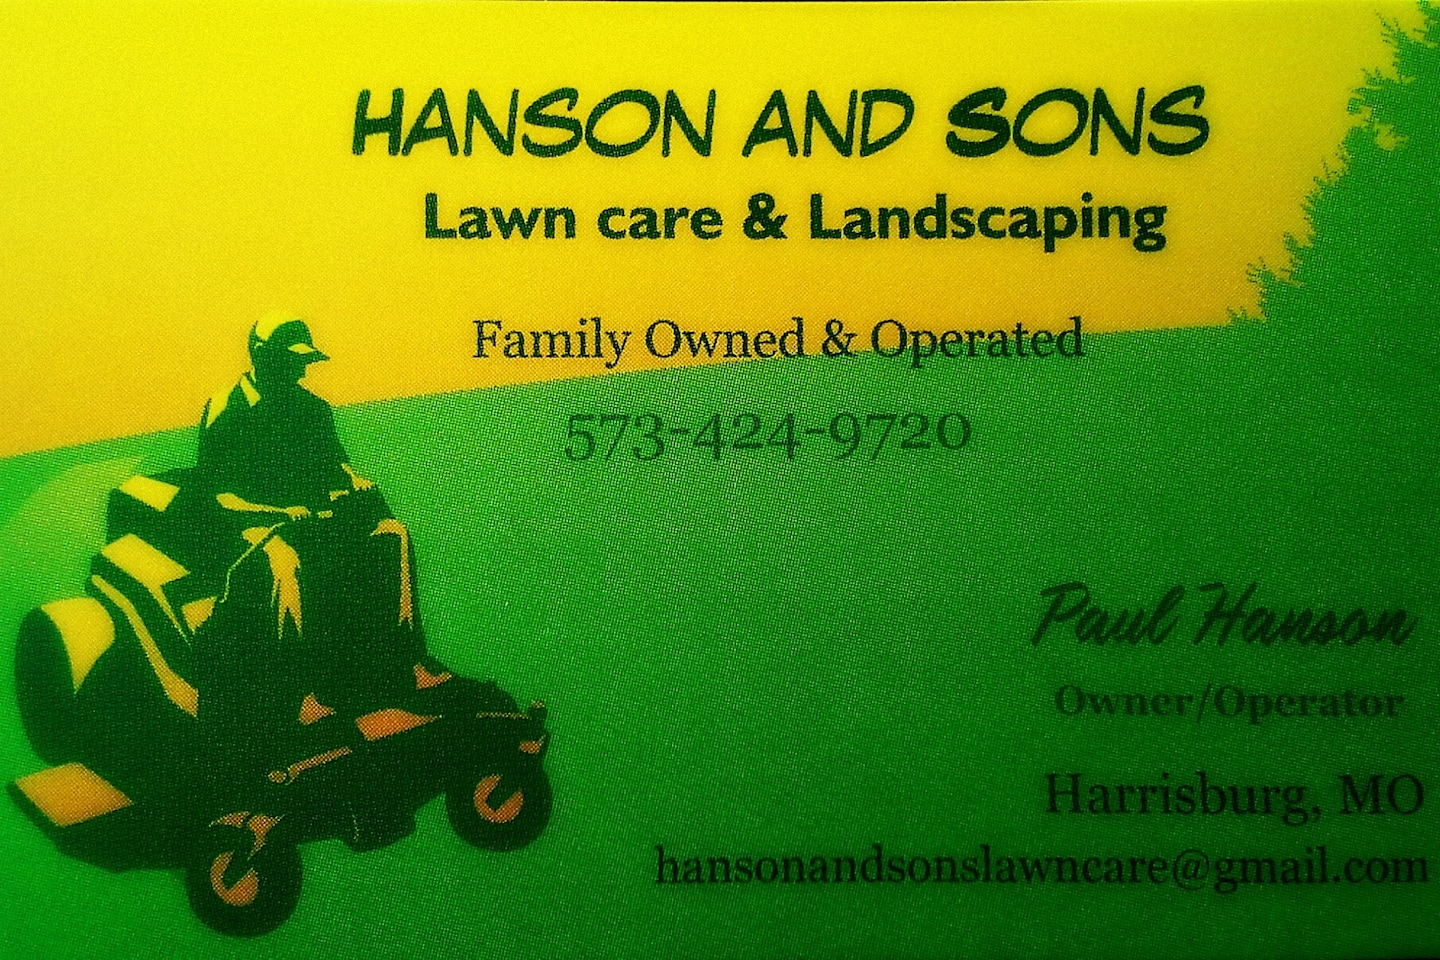 HANSON AND SONS Lawn Care & Landscaping